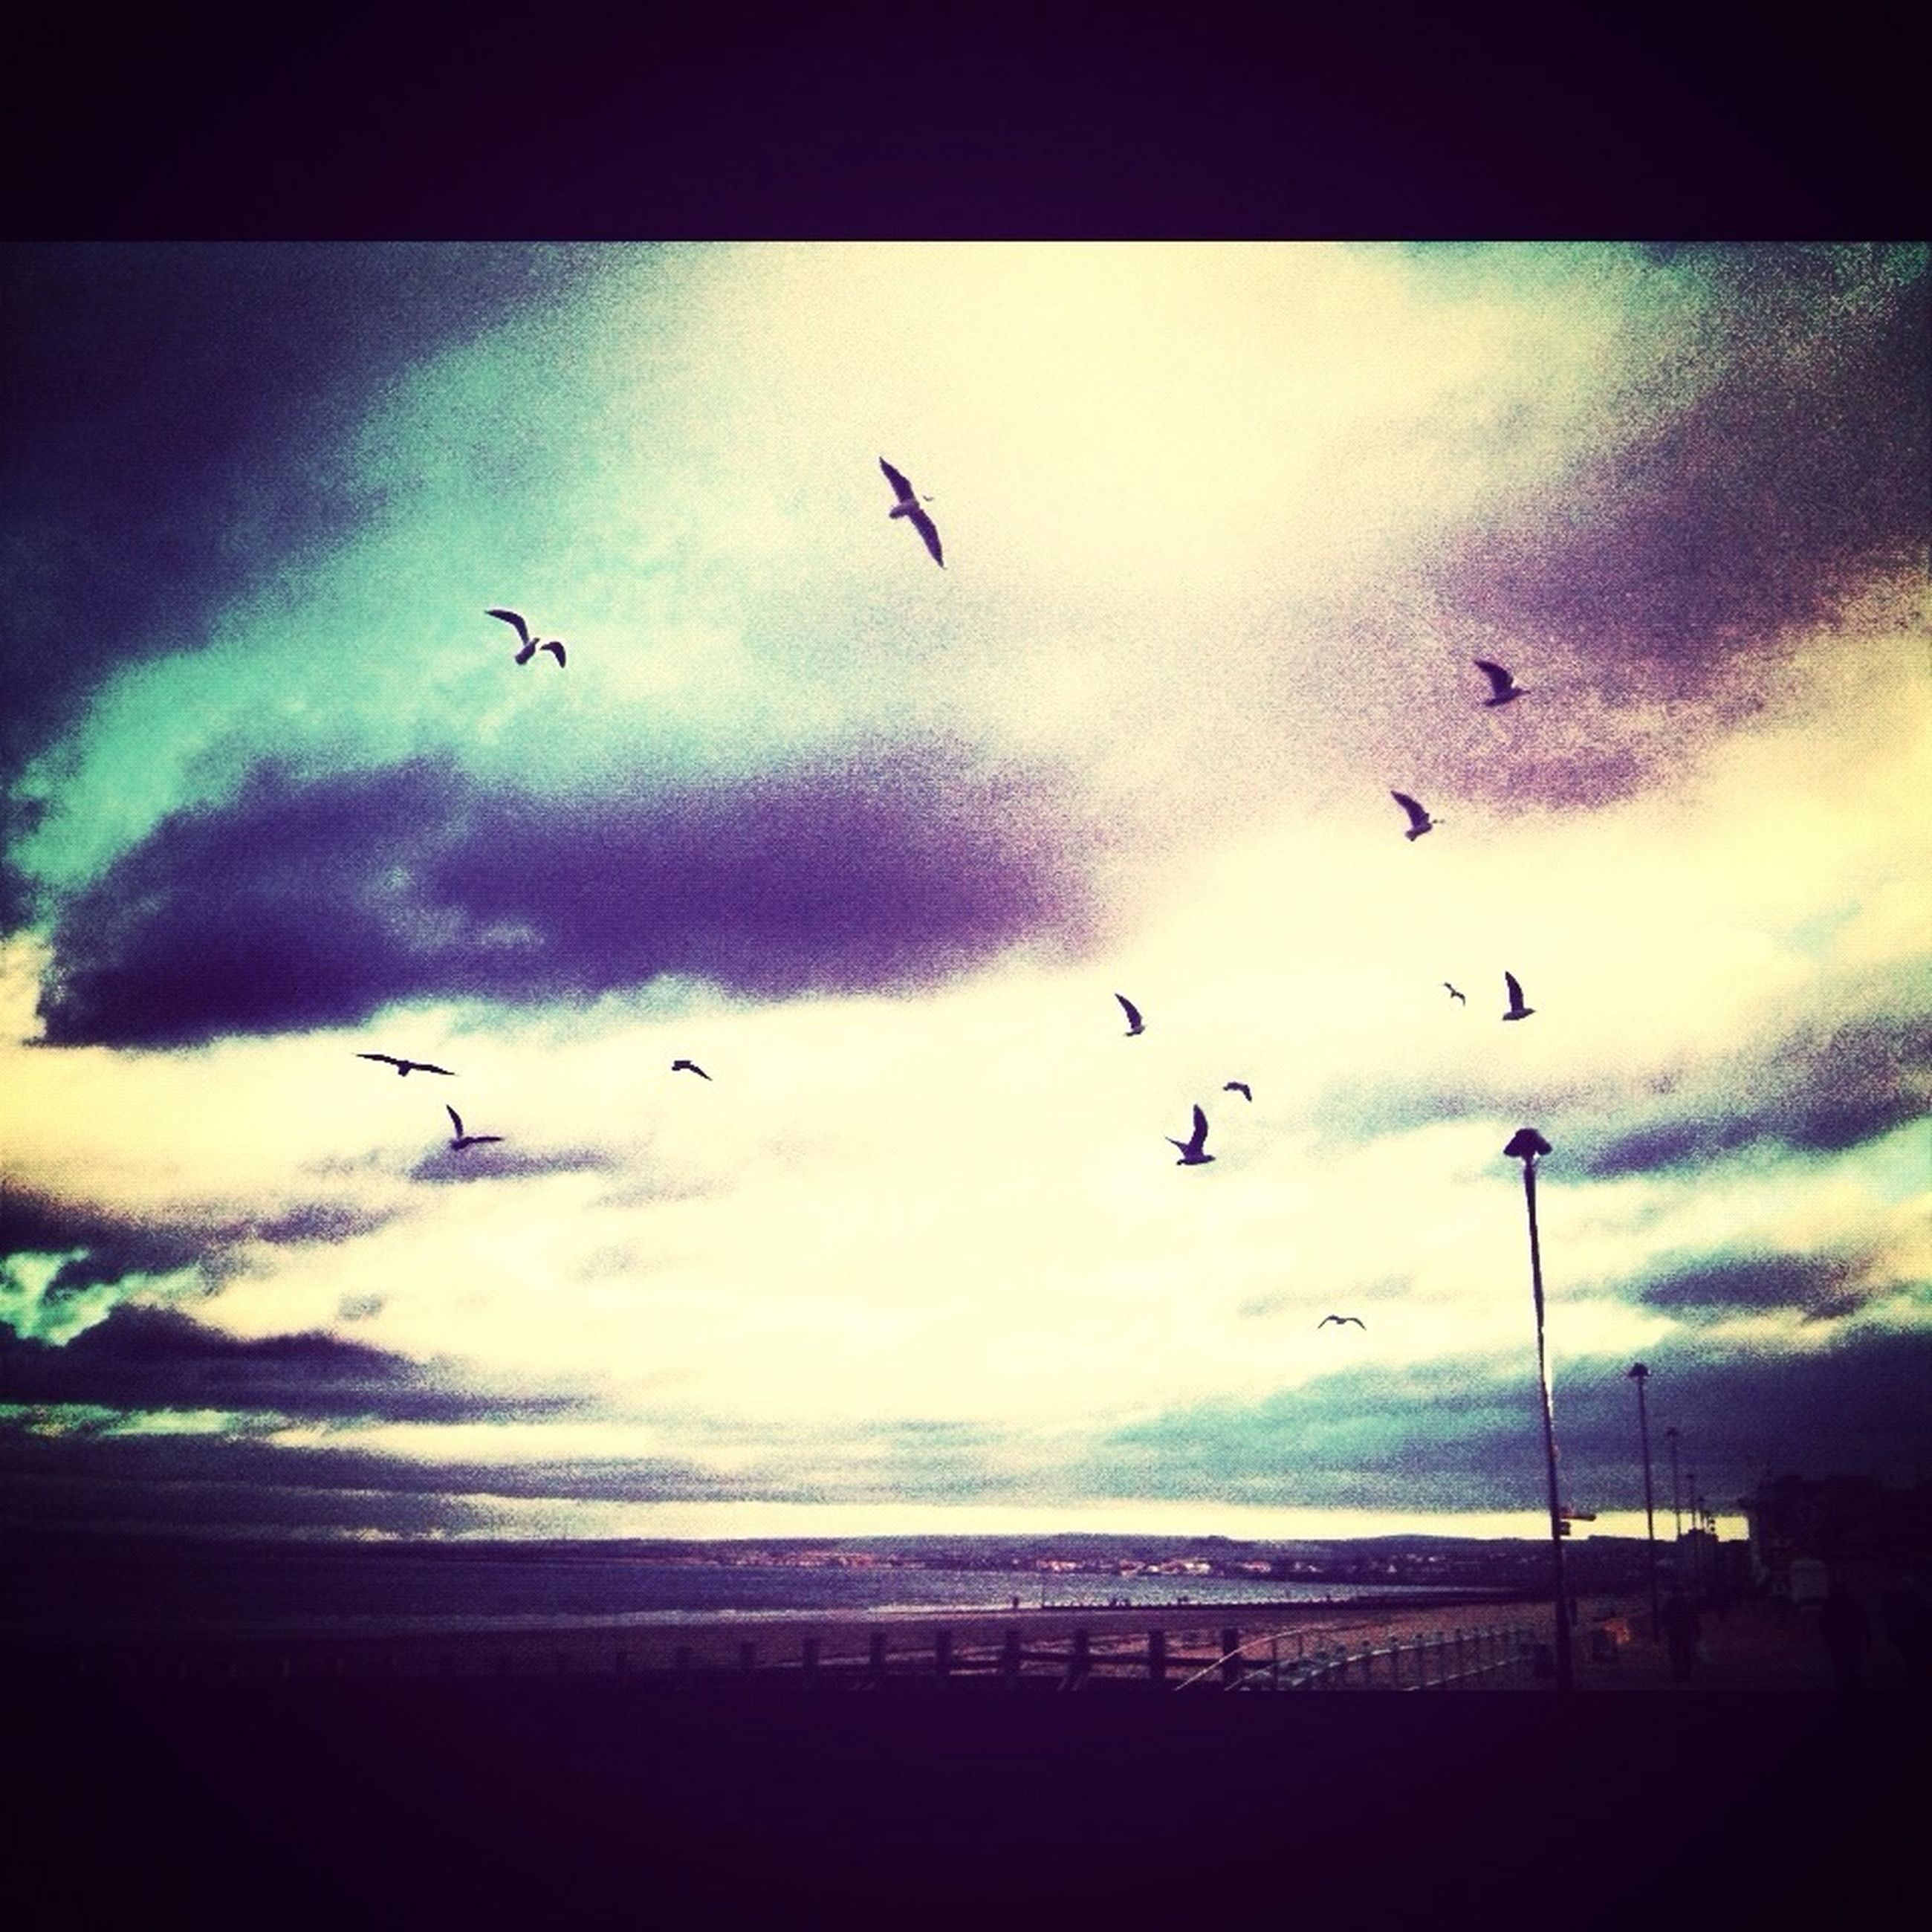 bird, flying, animal themes, wildlife, animals in the wild, sky, silhouette, transfer print, auto post production filter, sea, mid-air, scenics, nature, beauty in nature, cloud - sky, sunset, flock of birds, tranquility, water